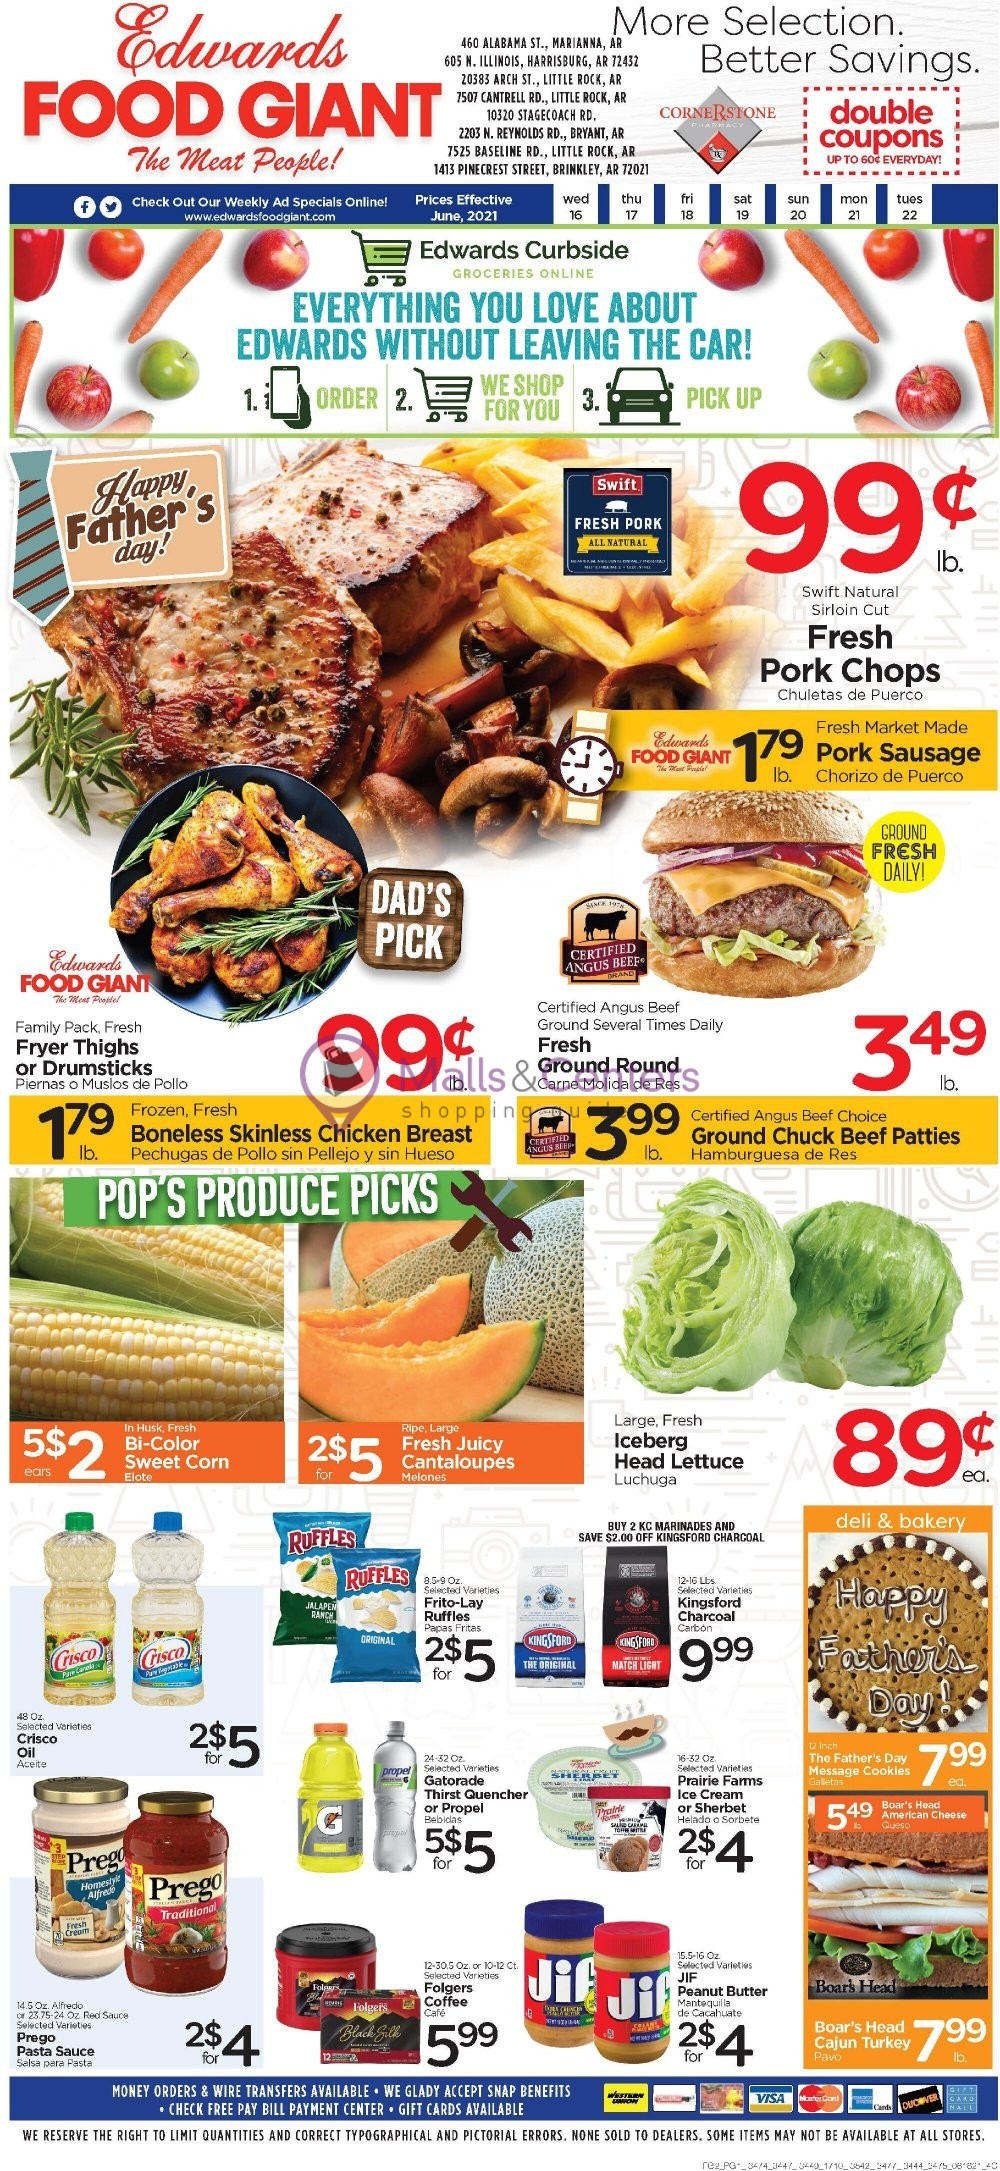 weekly ads Edwards Food Giant - page 1 - mallscenters.com